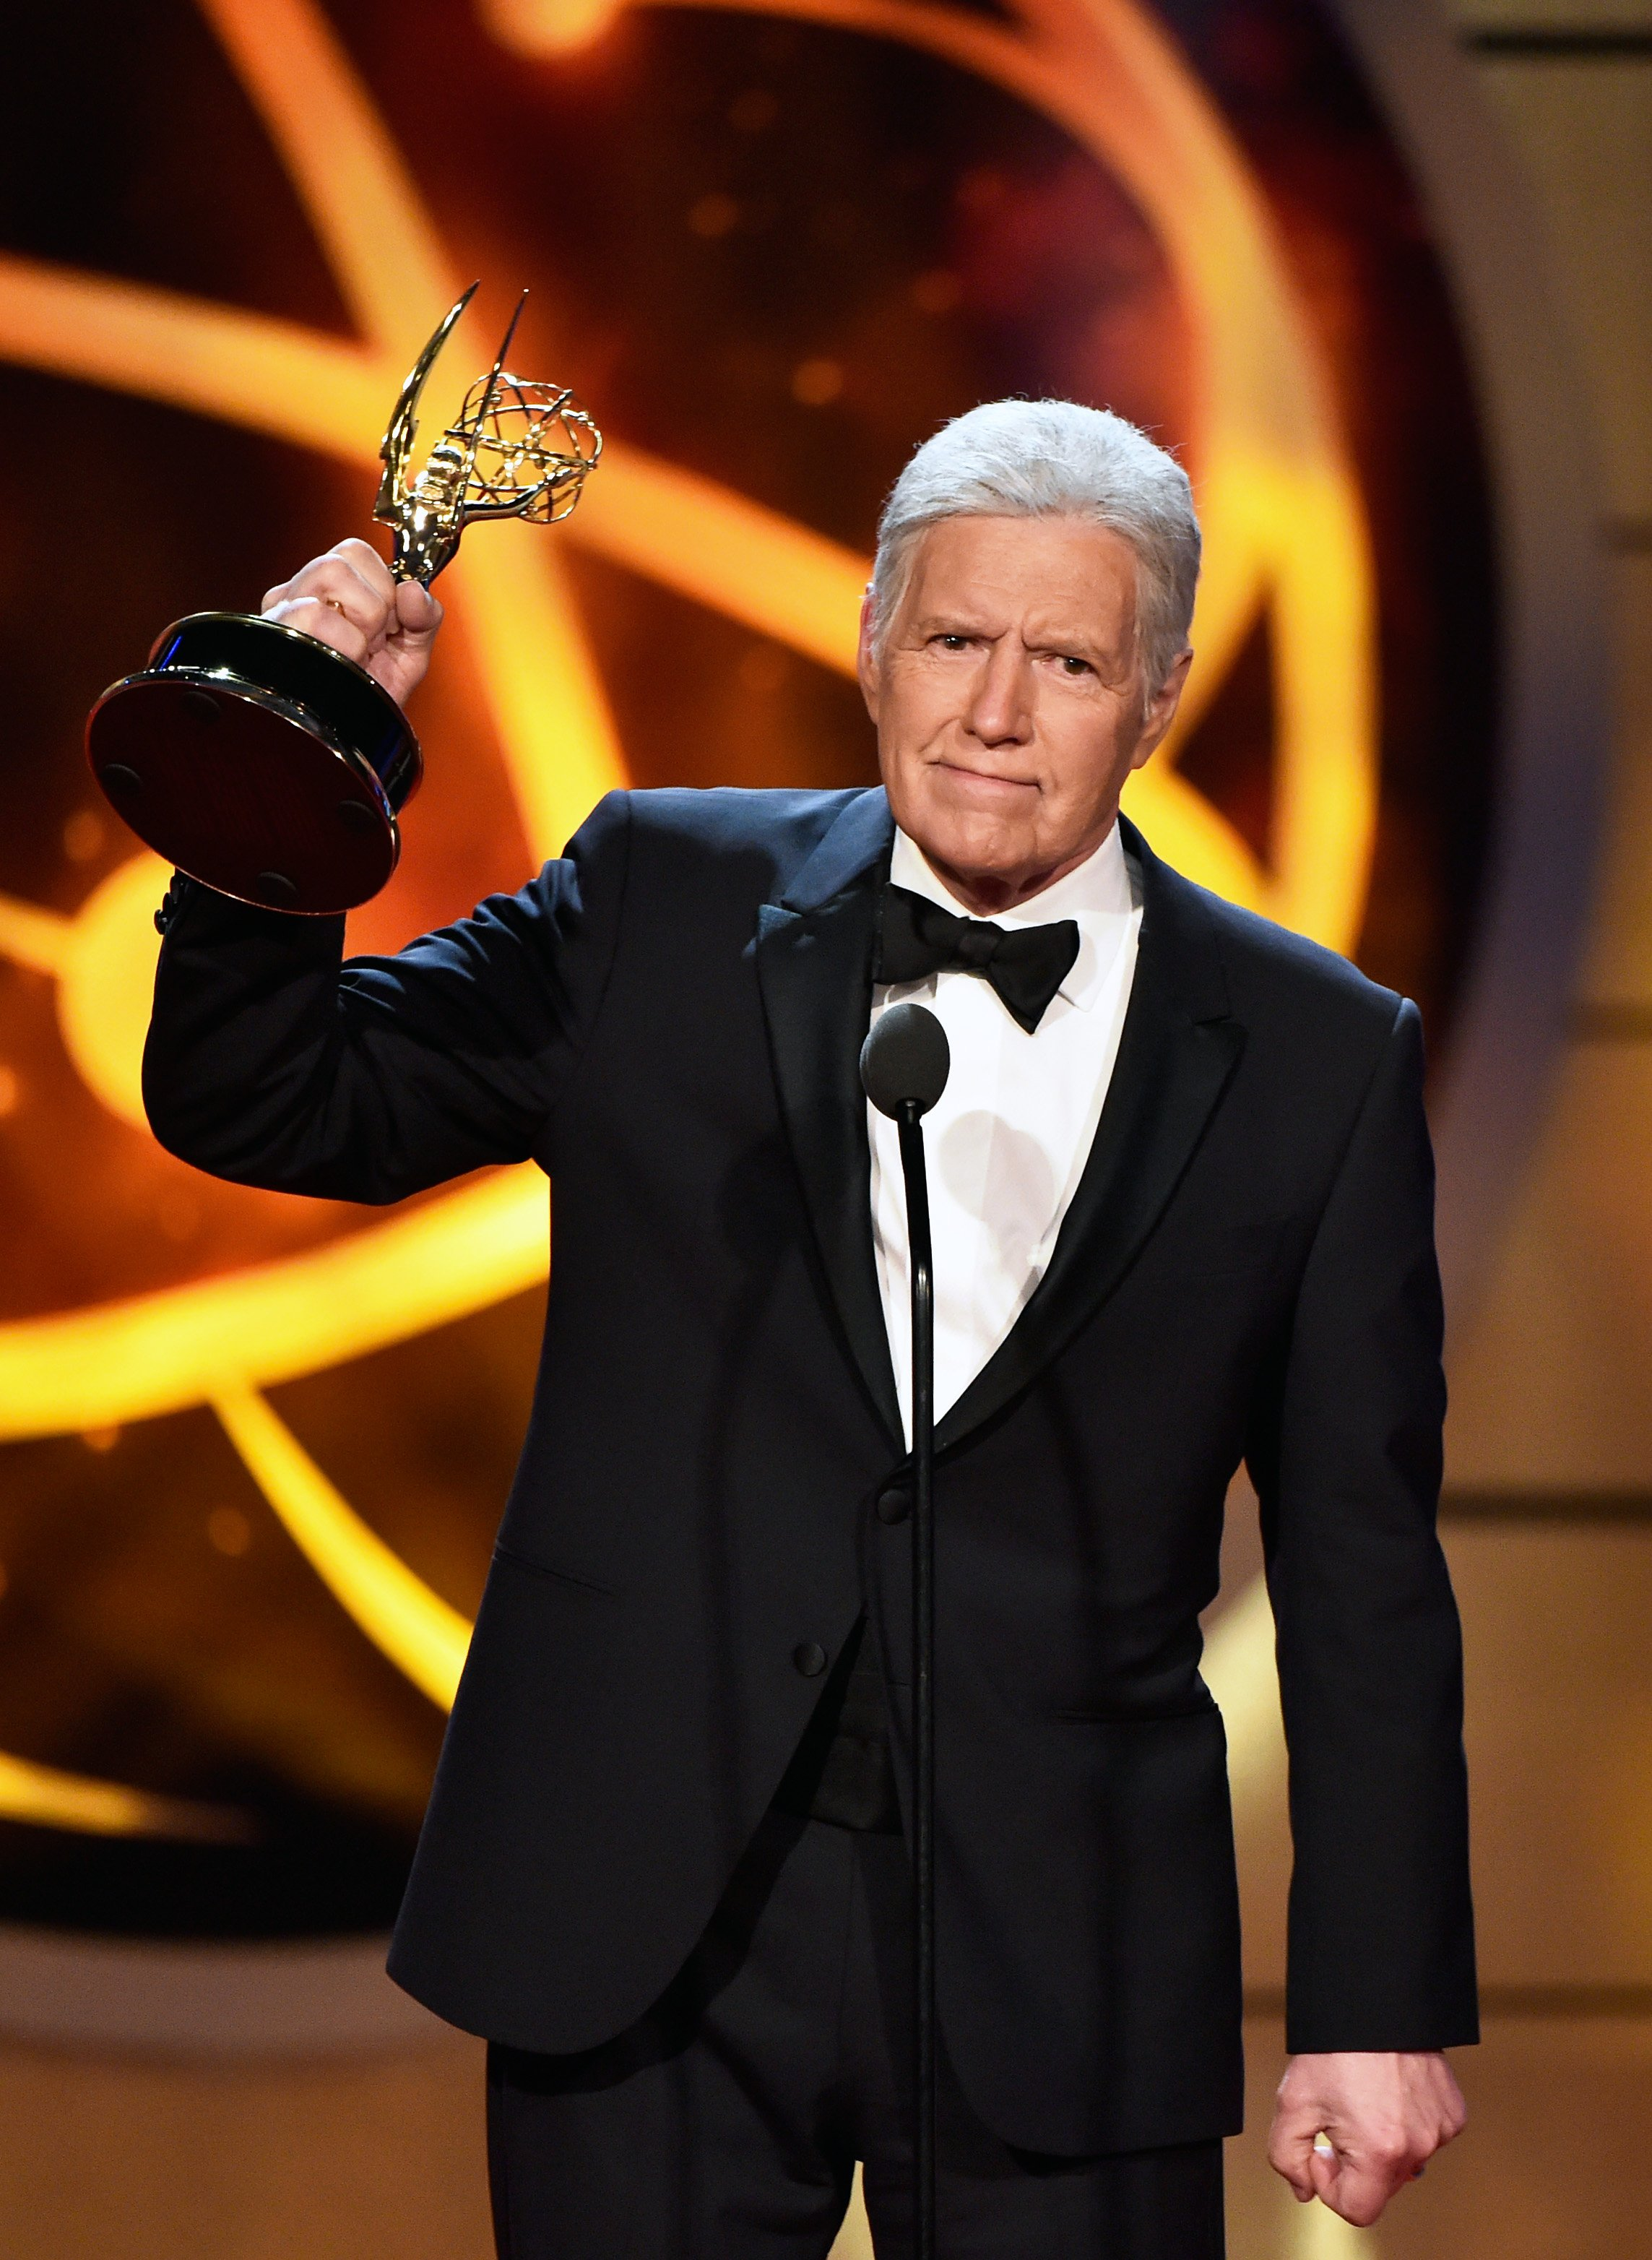 Alex Trebek attends the 46th Annual Daytime Emmy Awards | Photo: Getty Images